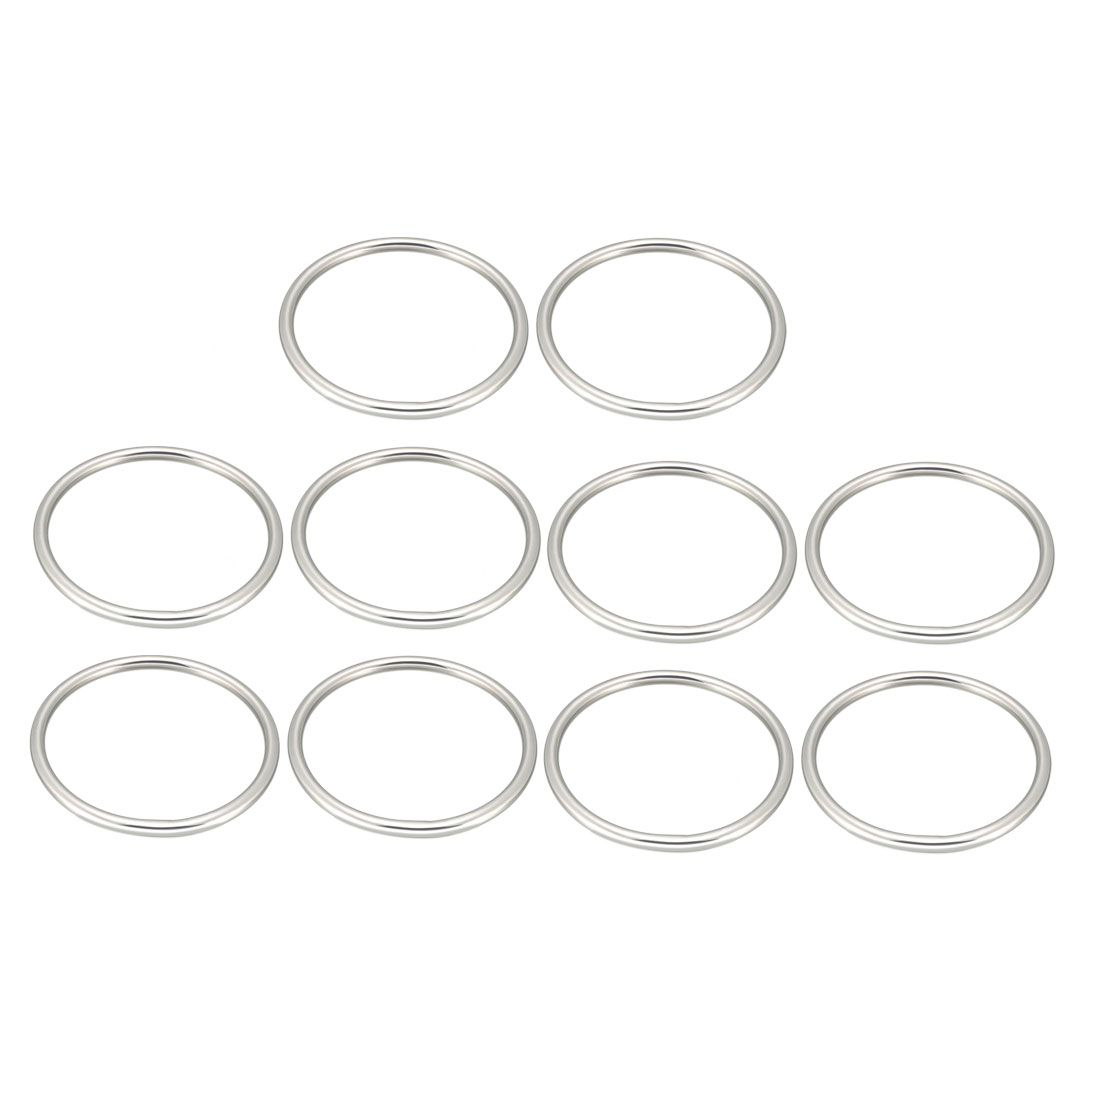 Uxcell 10 Pcs Multi-Purpose Metal O Ring Buckle Welded 92mm X 80mm X 6mm For Hardware Bags Ring Hand DIY Accessories